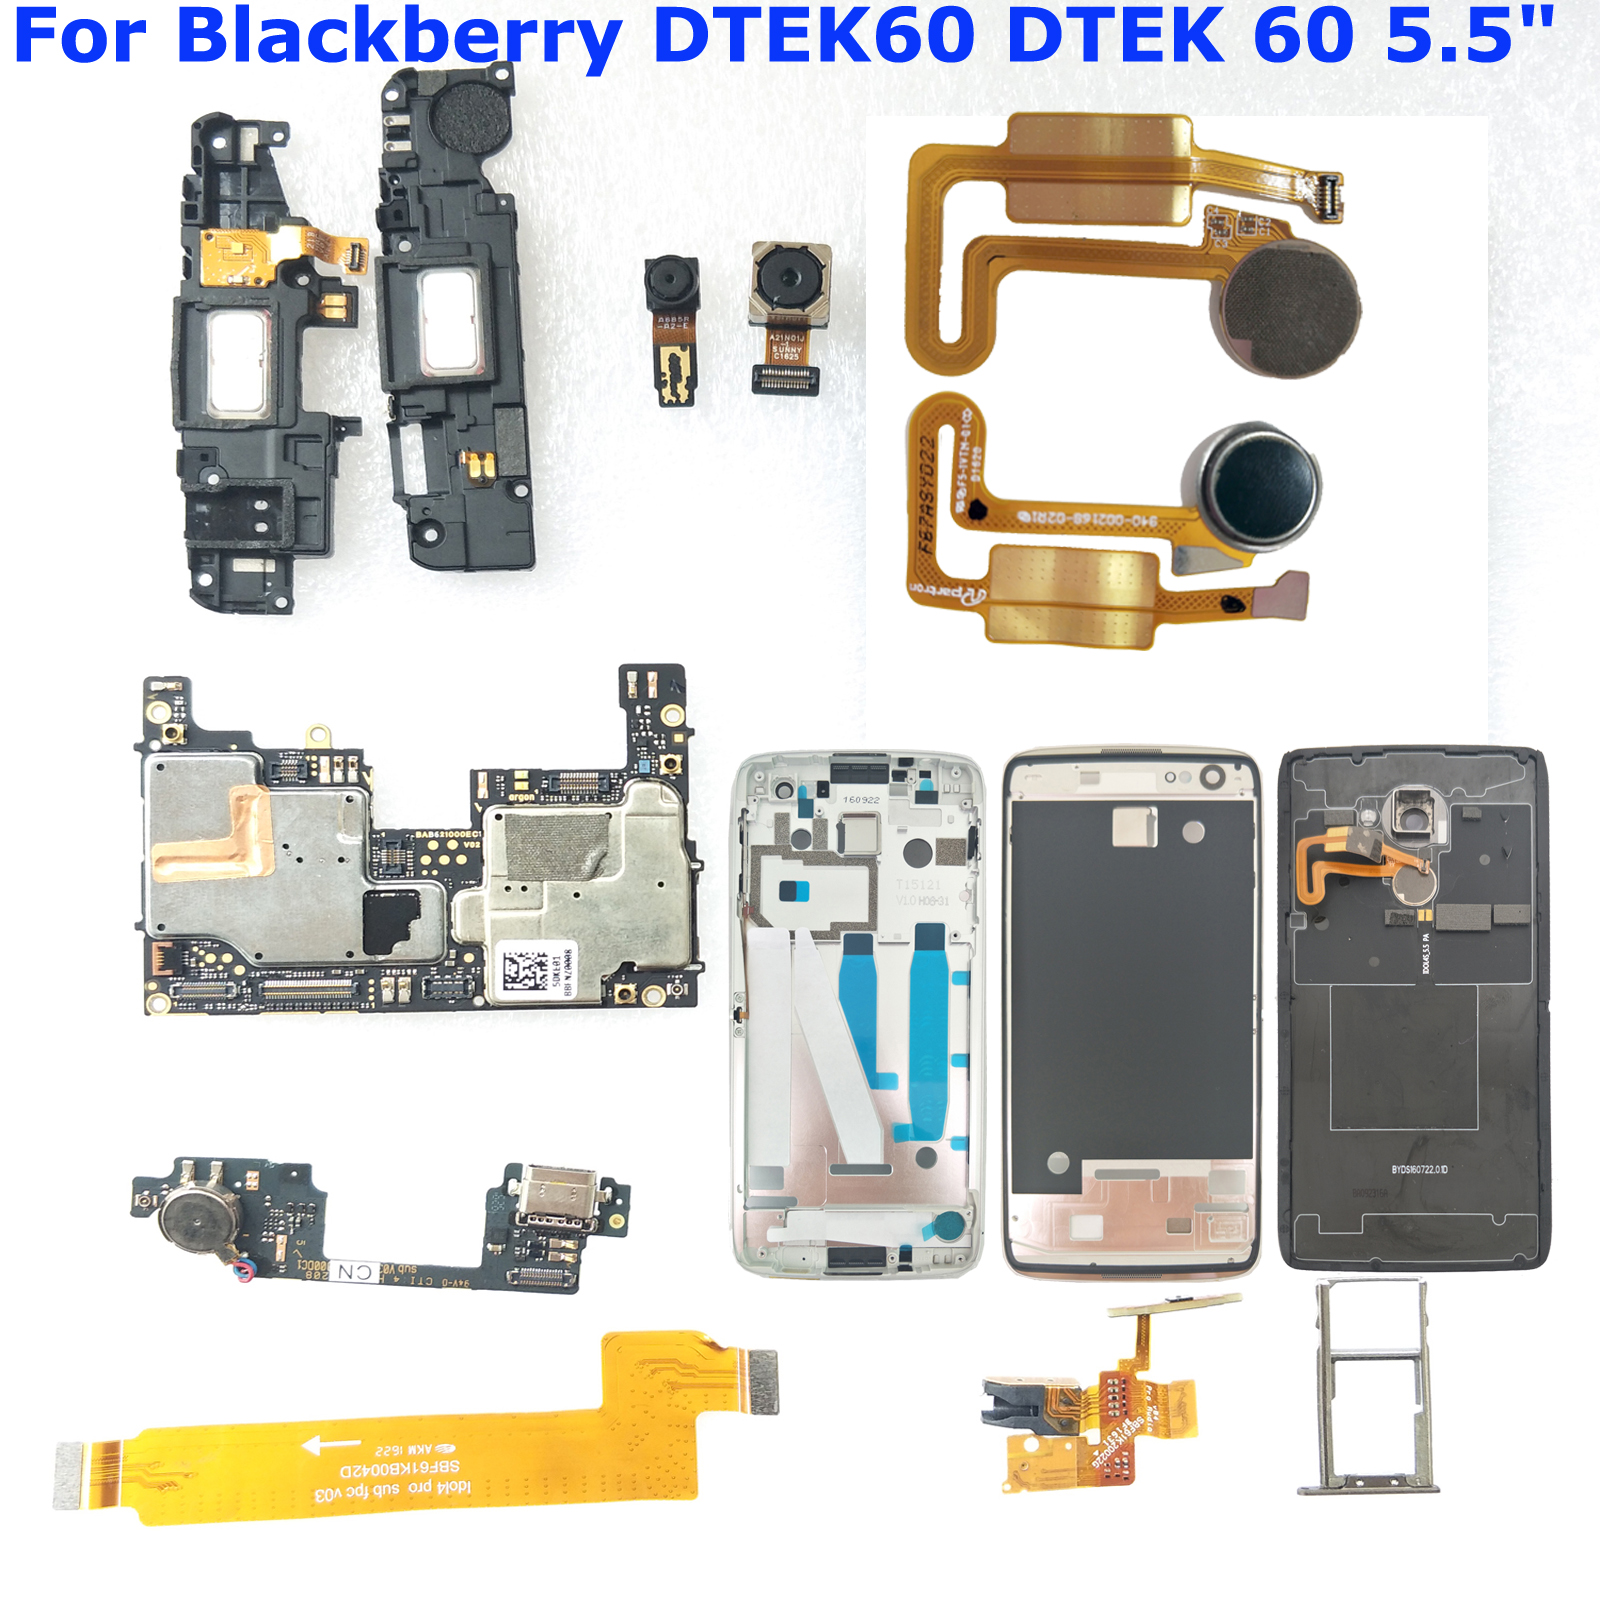 Shyueda OEM For Blackberry DTEK60 Frame /back Cover / Camera/ Mainboard /Power/ USB Charging Port /Loudspeaker / Fingerprint